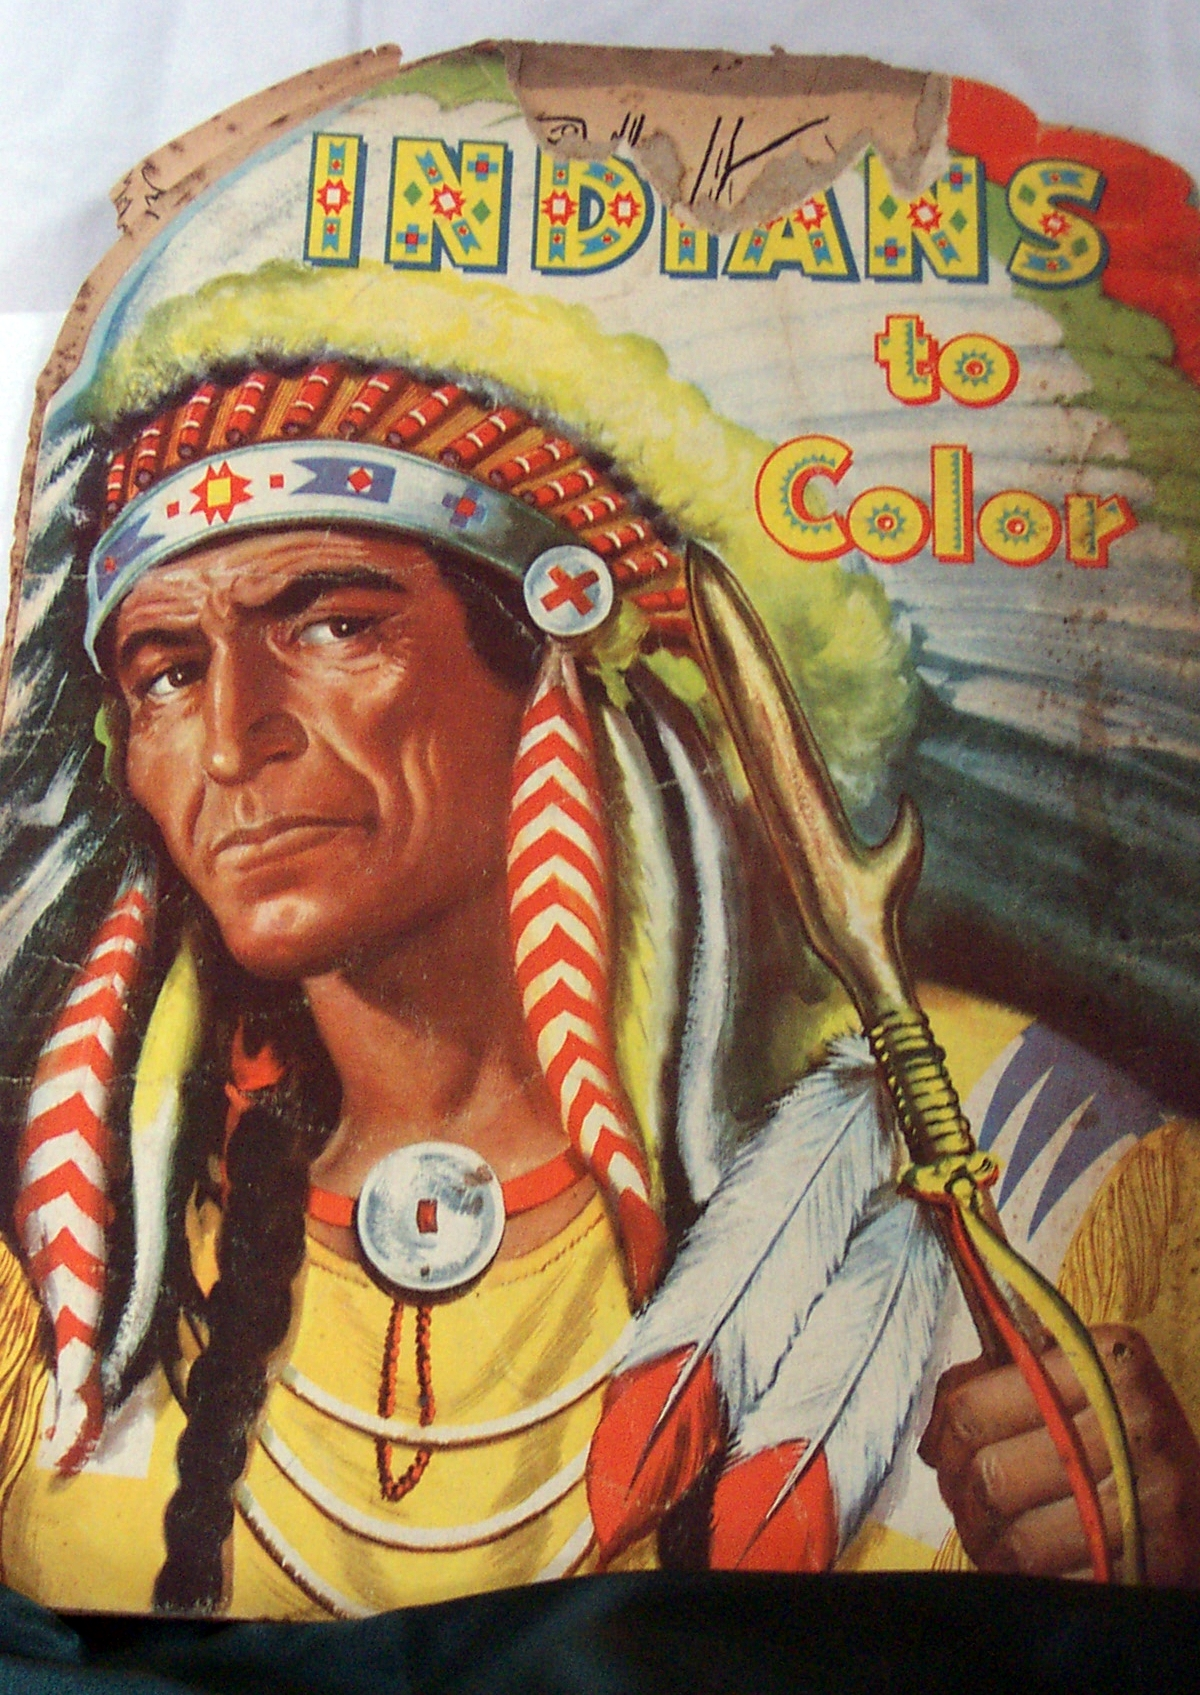 Extremely Rare Gem 1951 August Lenox Indian Coloring Book from A Hidden Gem